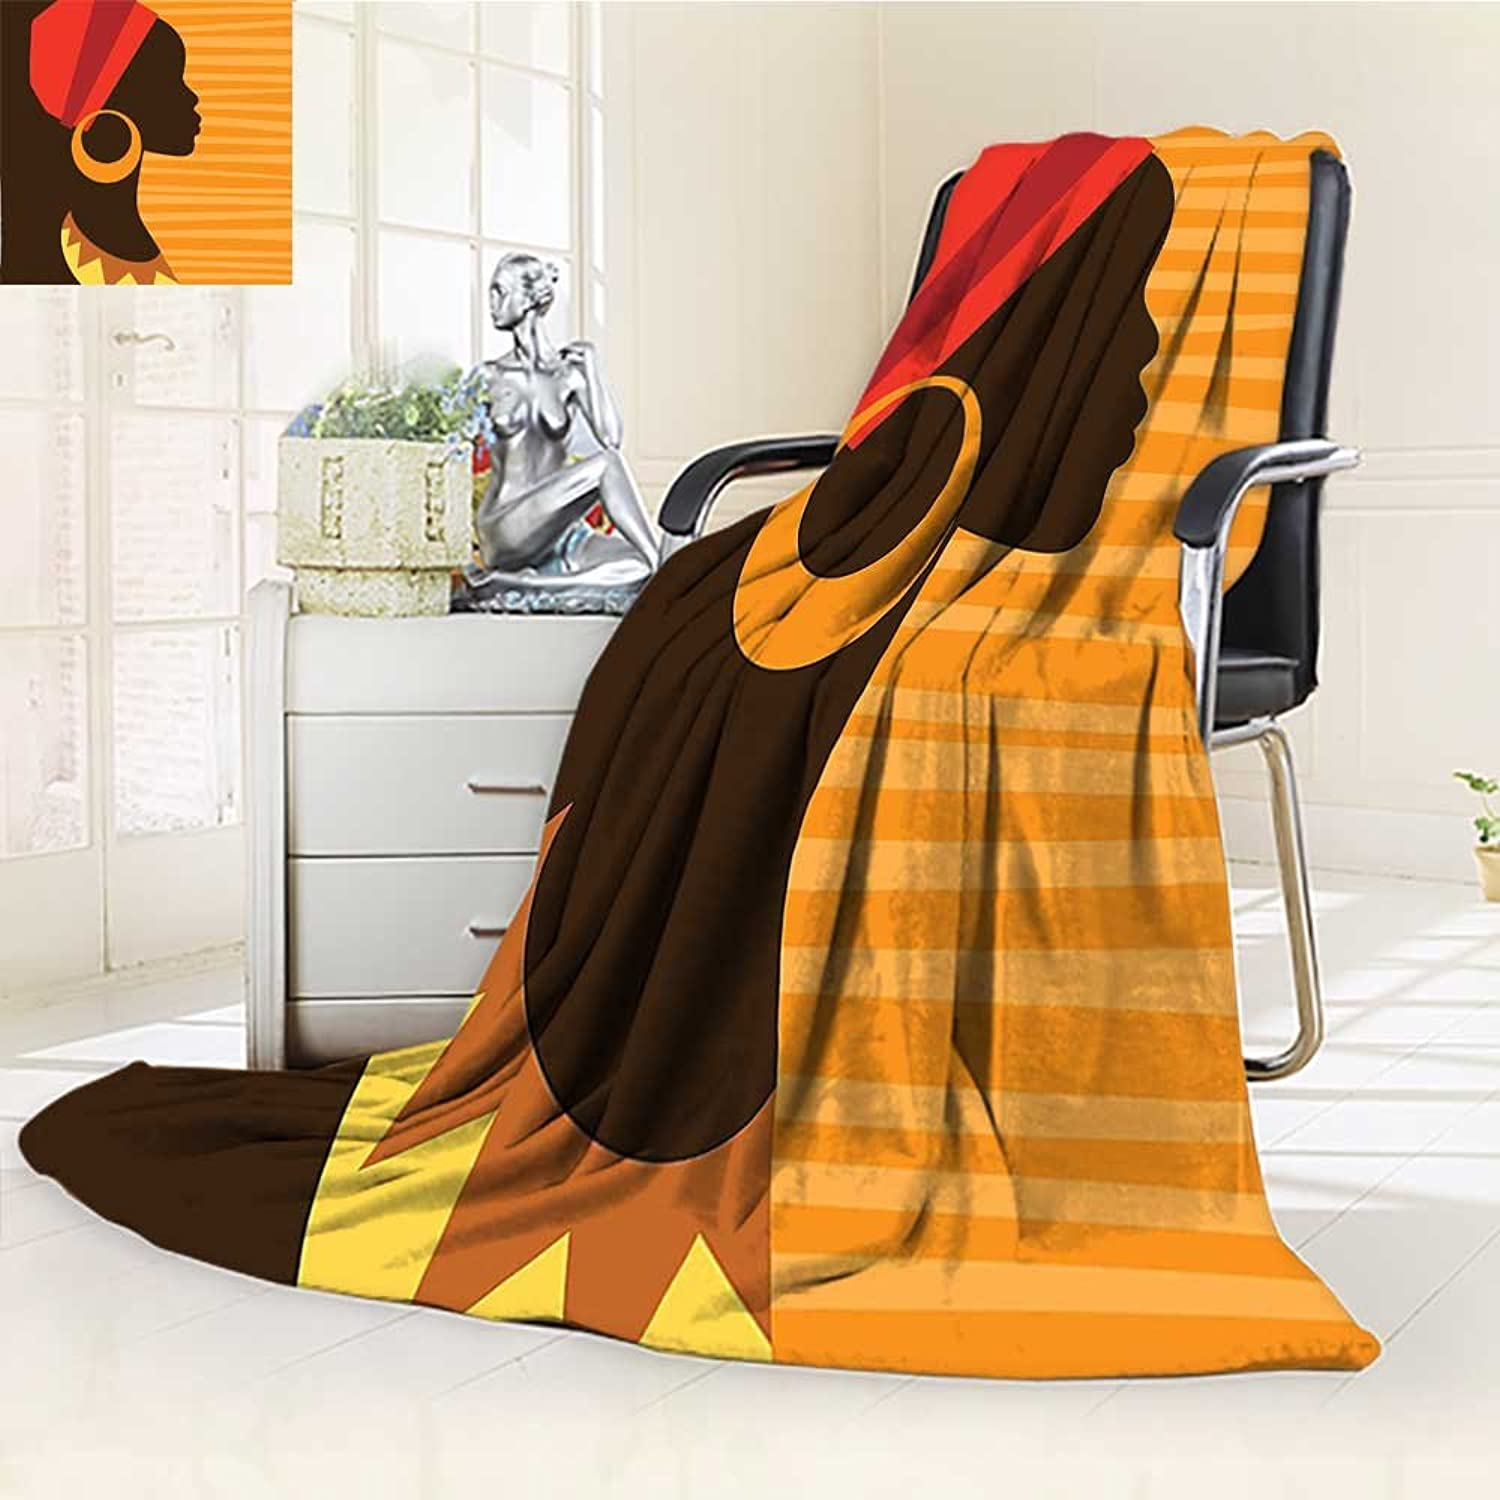 YOYI-HOME Silky Soft Plush Warm Duplex Printed Blanket, Girl Profile Silhouette with Earrings Grace and Elegance Icon Image Dark Brown Merigold Anti-Static,2 Ply Thick Blanket  W59 x H39.5